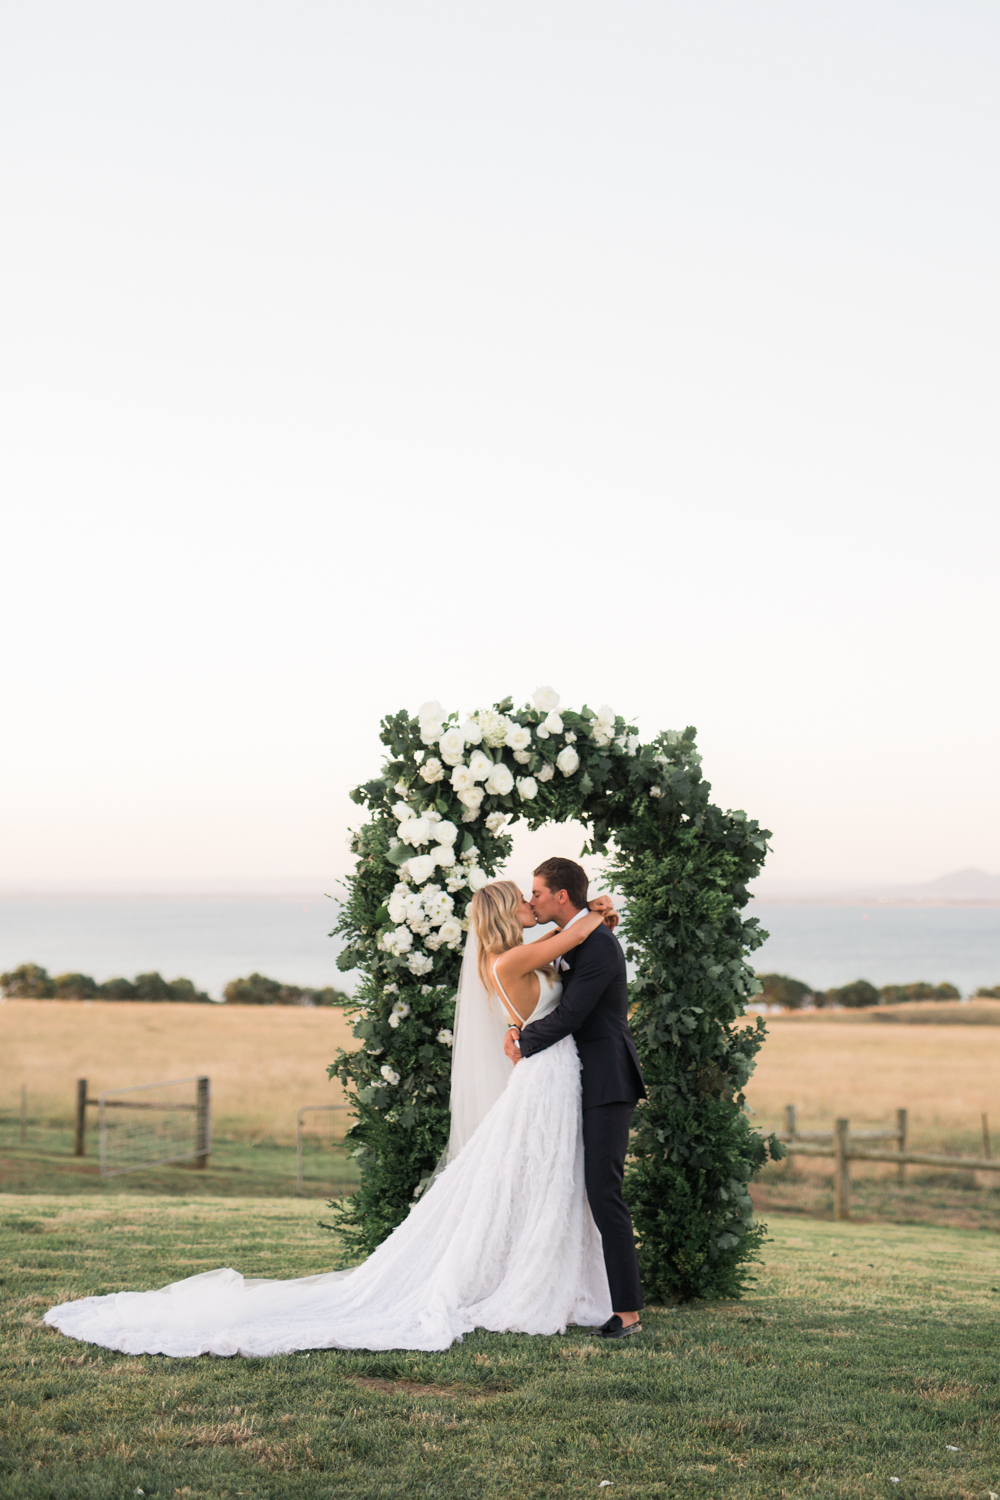 Bleeker Wedding Dress | Photography by Jenna Fahey-White